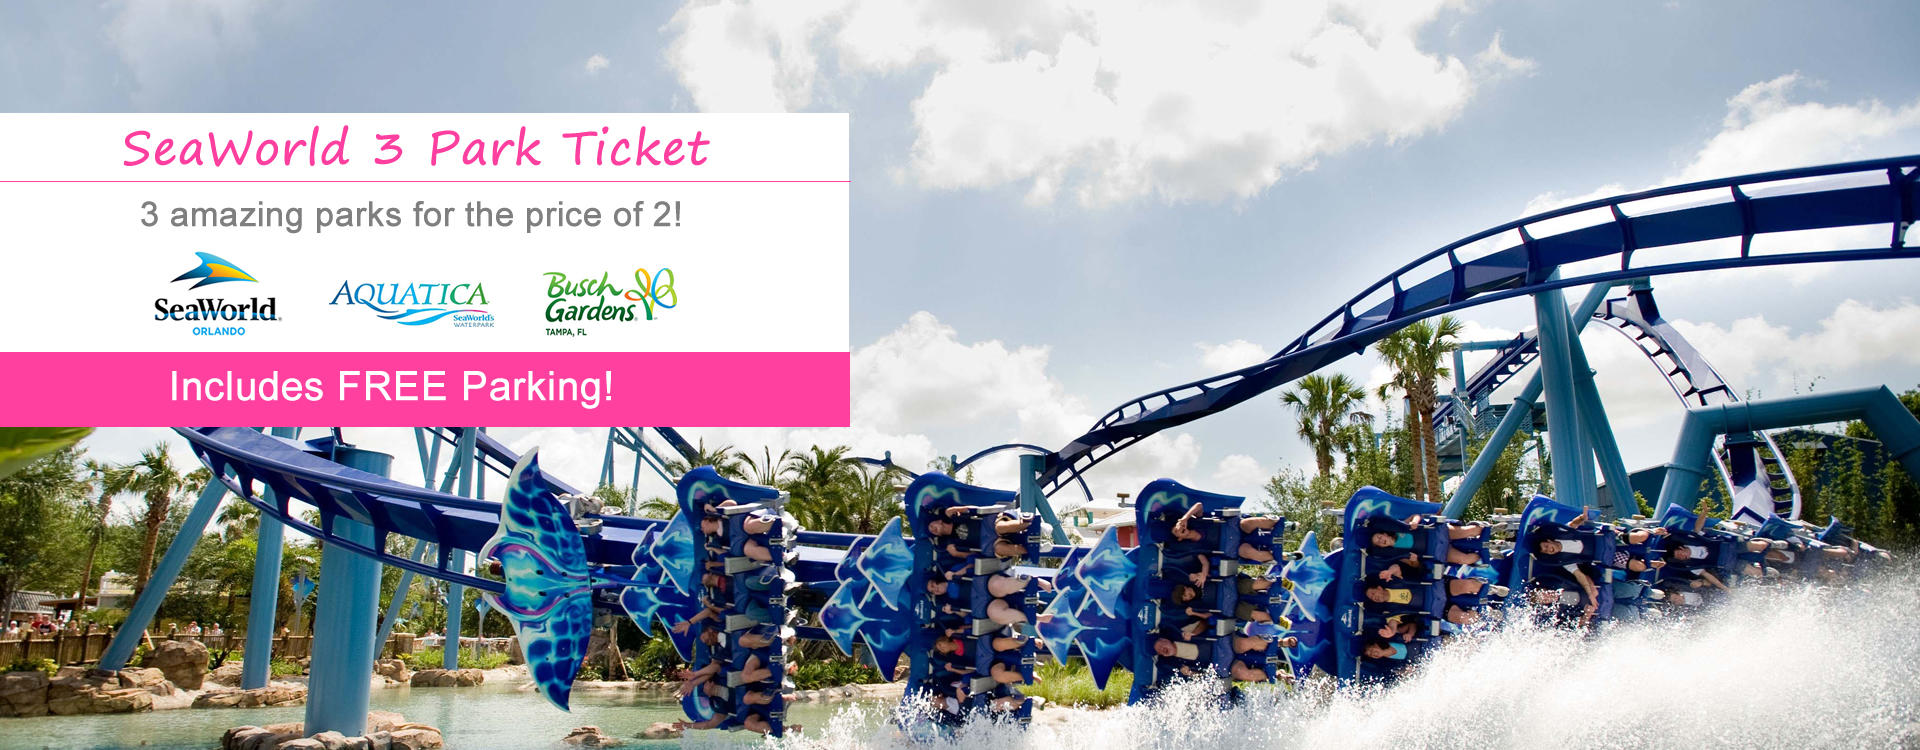 https://www.themeparkticketsdirect.com/Ticket/3-Park-SeaWorld,-Aquatica-and-Busch-Gardens-Ticket